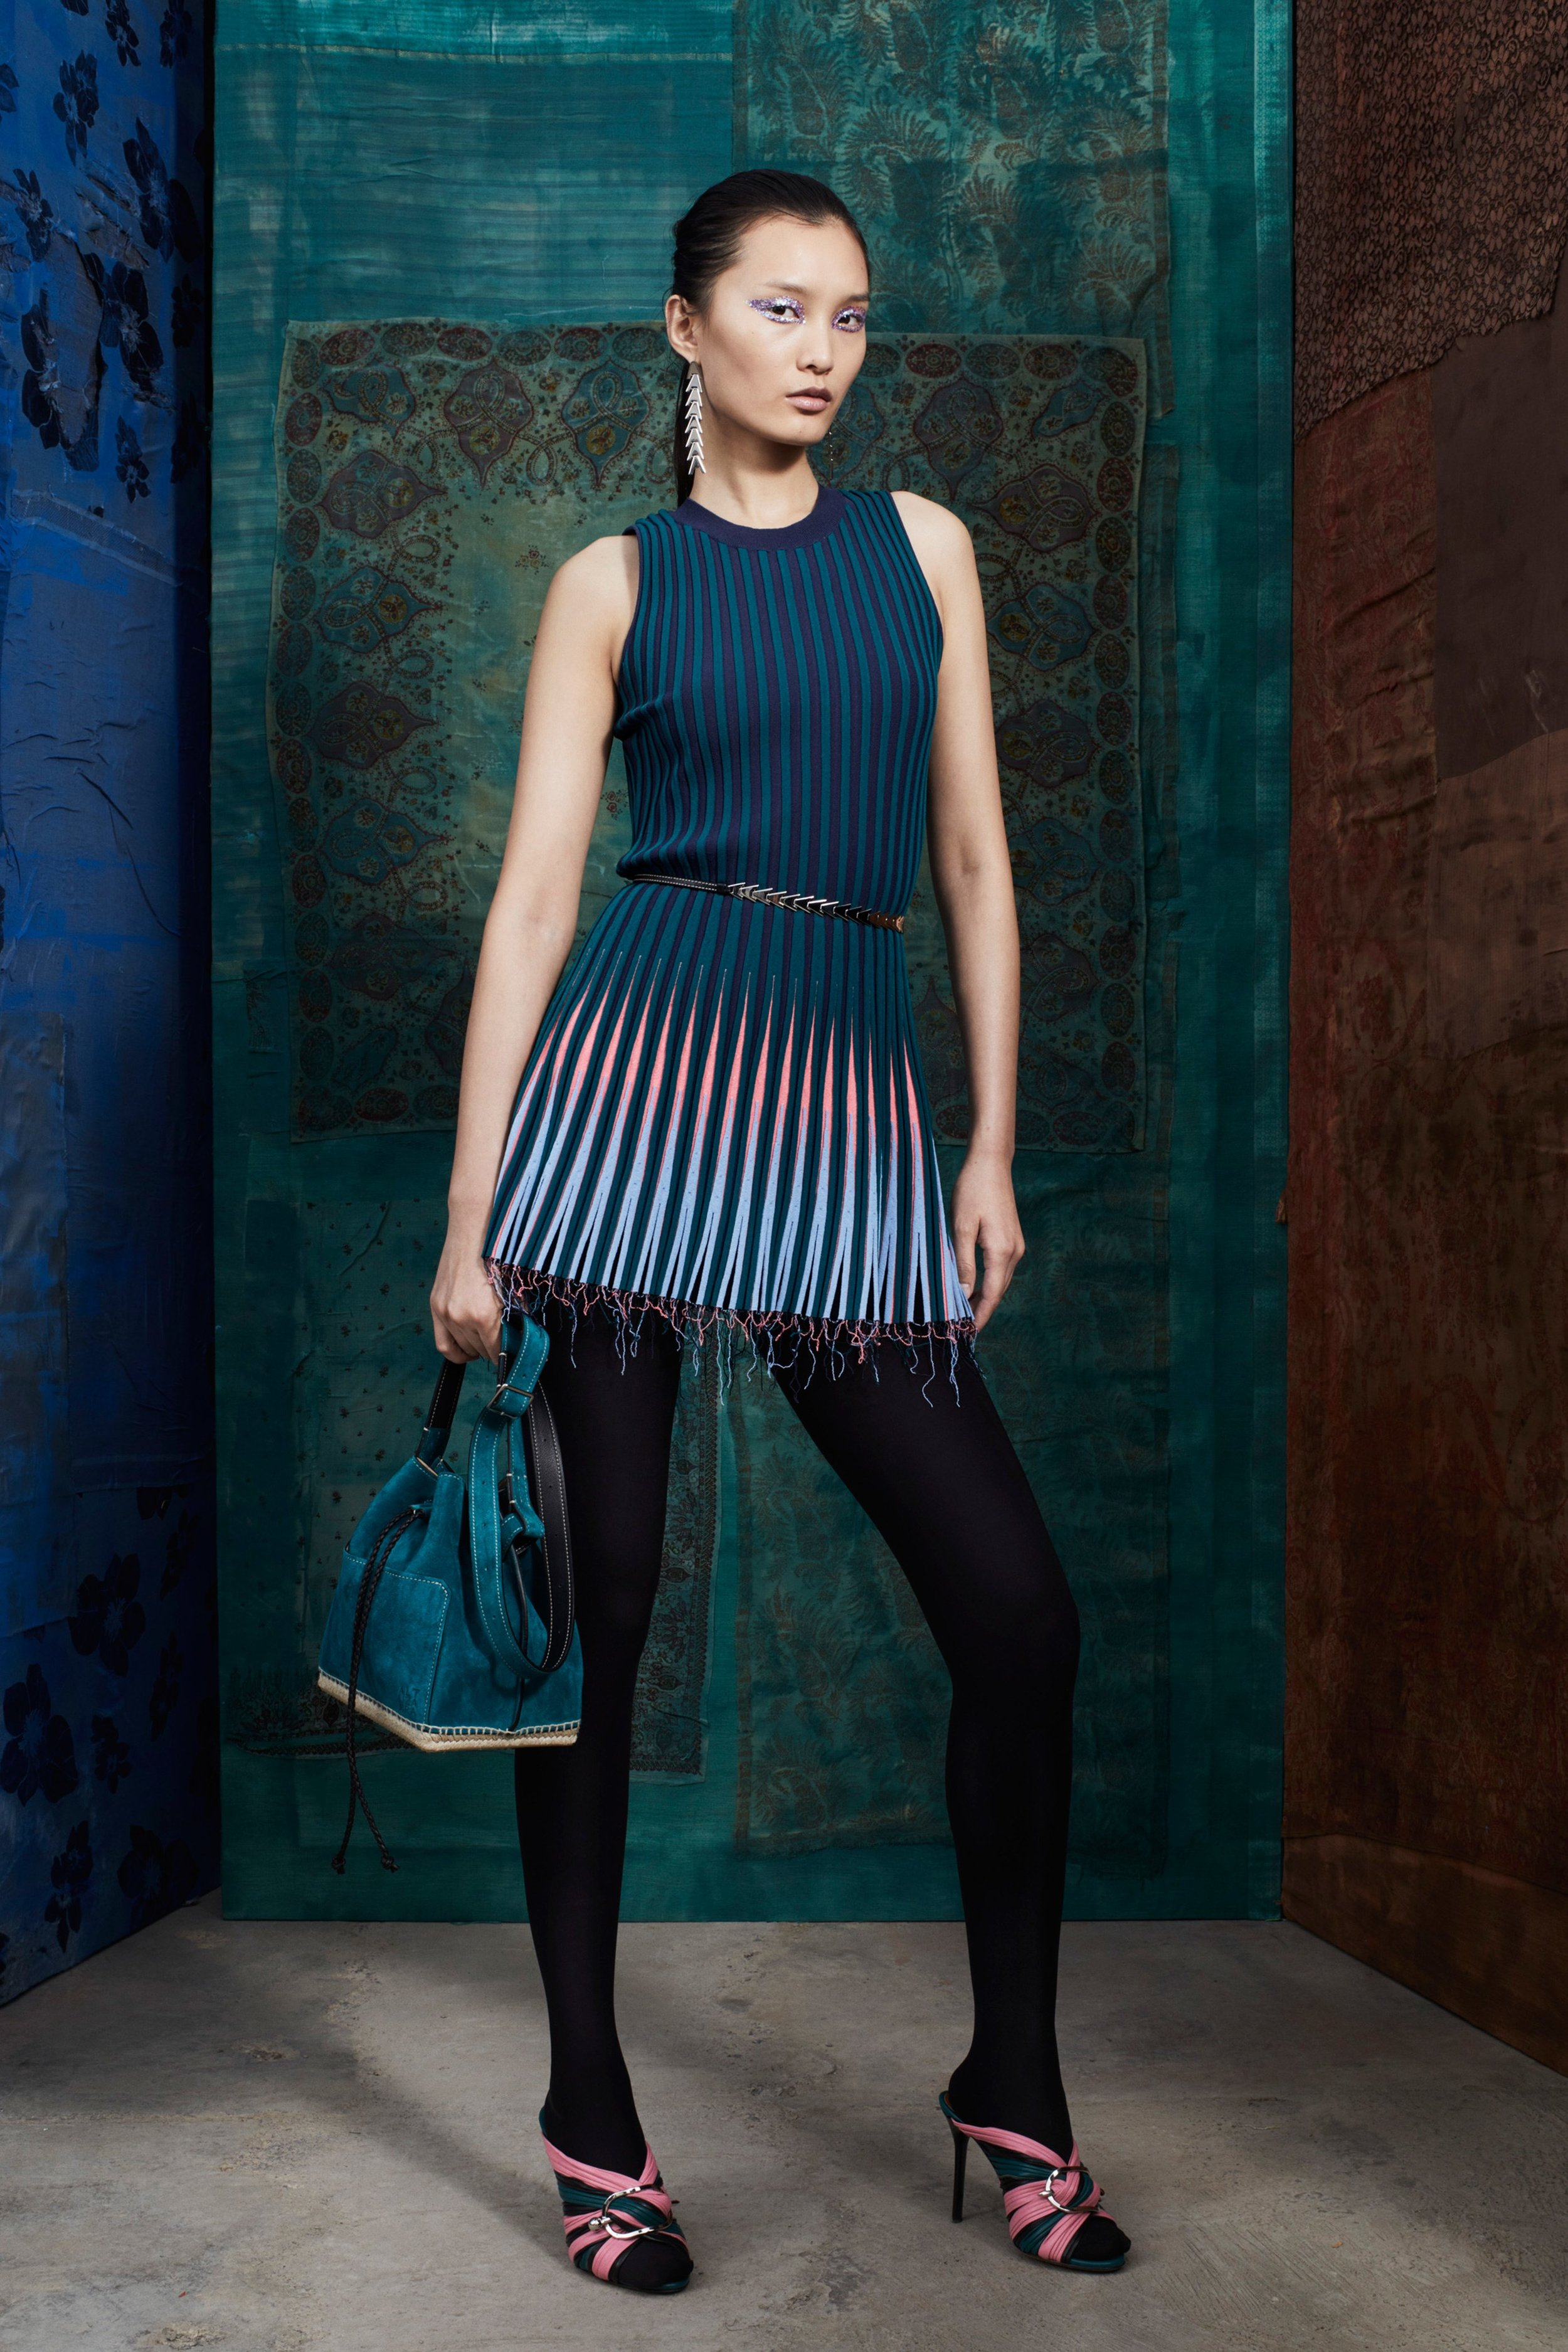 00018-altuzarra-new-york-pre-fall-19.jpg